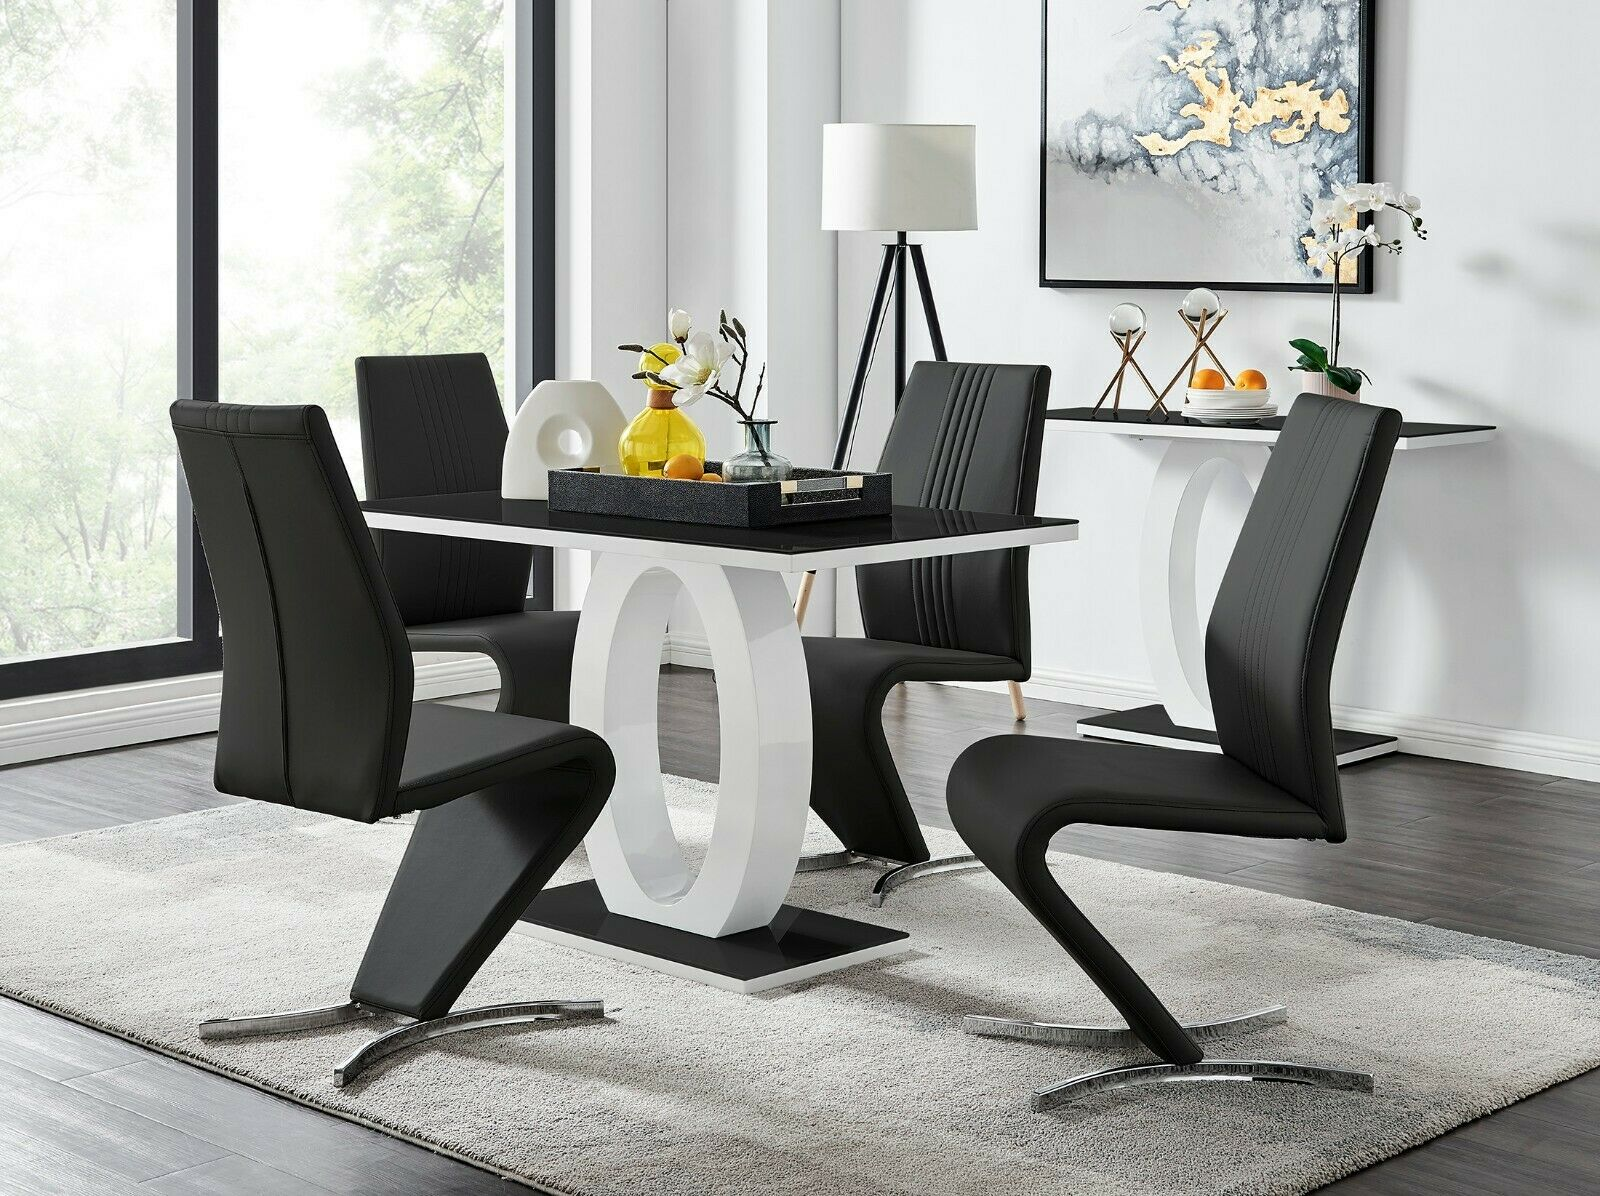 Black Gloss Charisma Rectangular Dining Set 4 Chairs Nextday Delivery For Sale Ebay